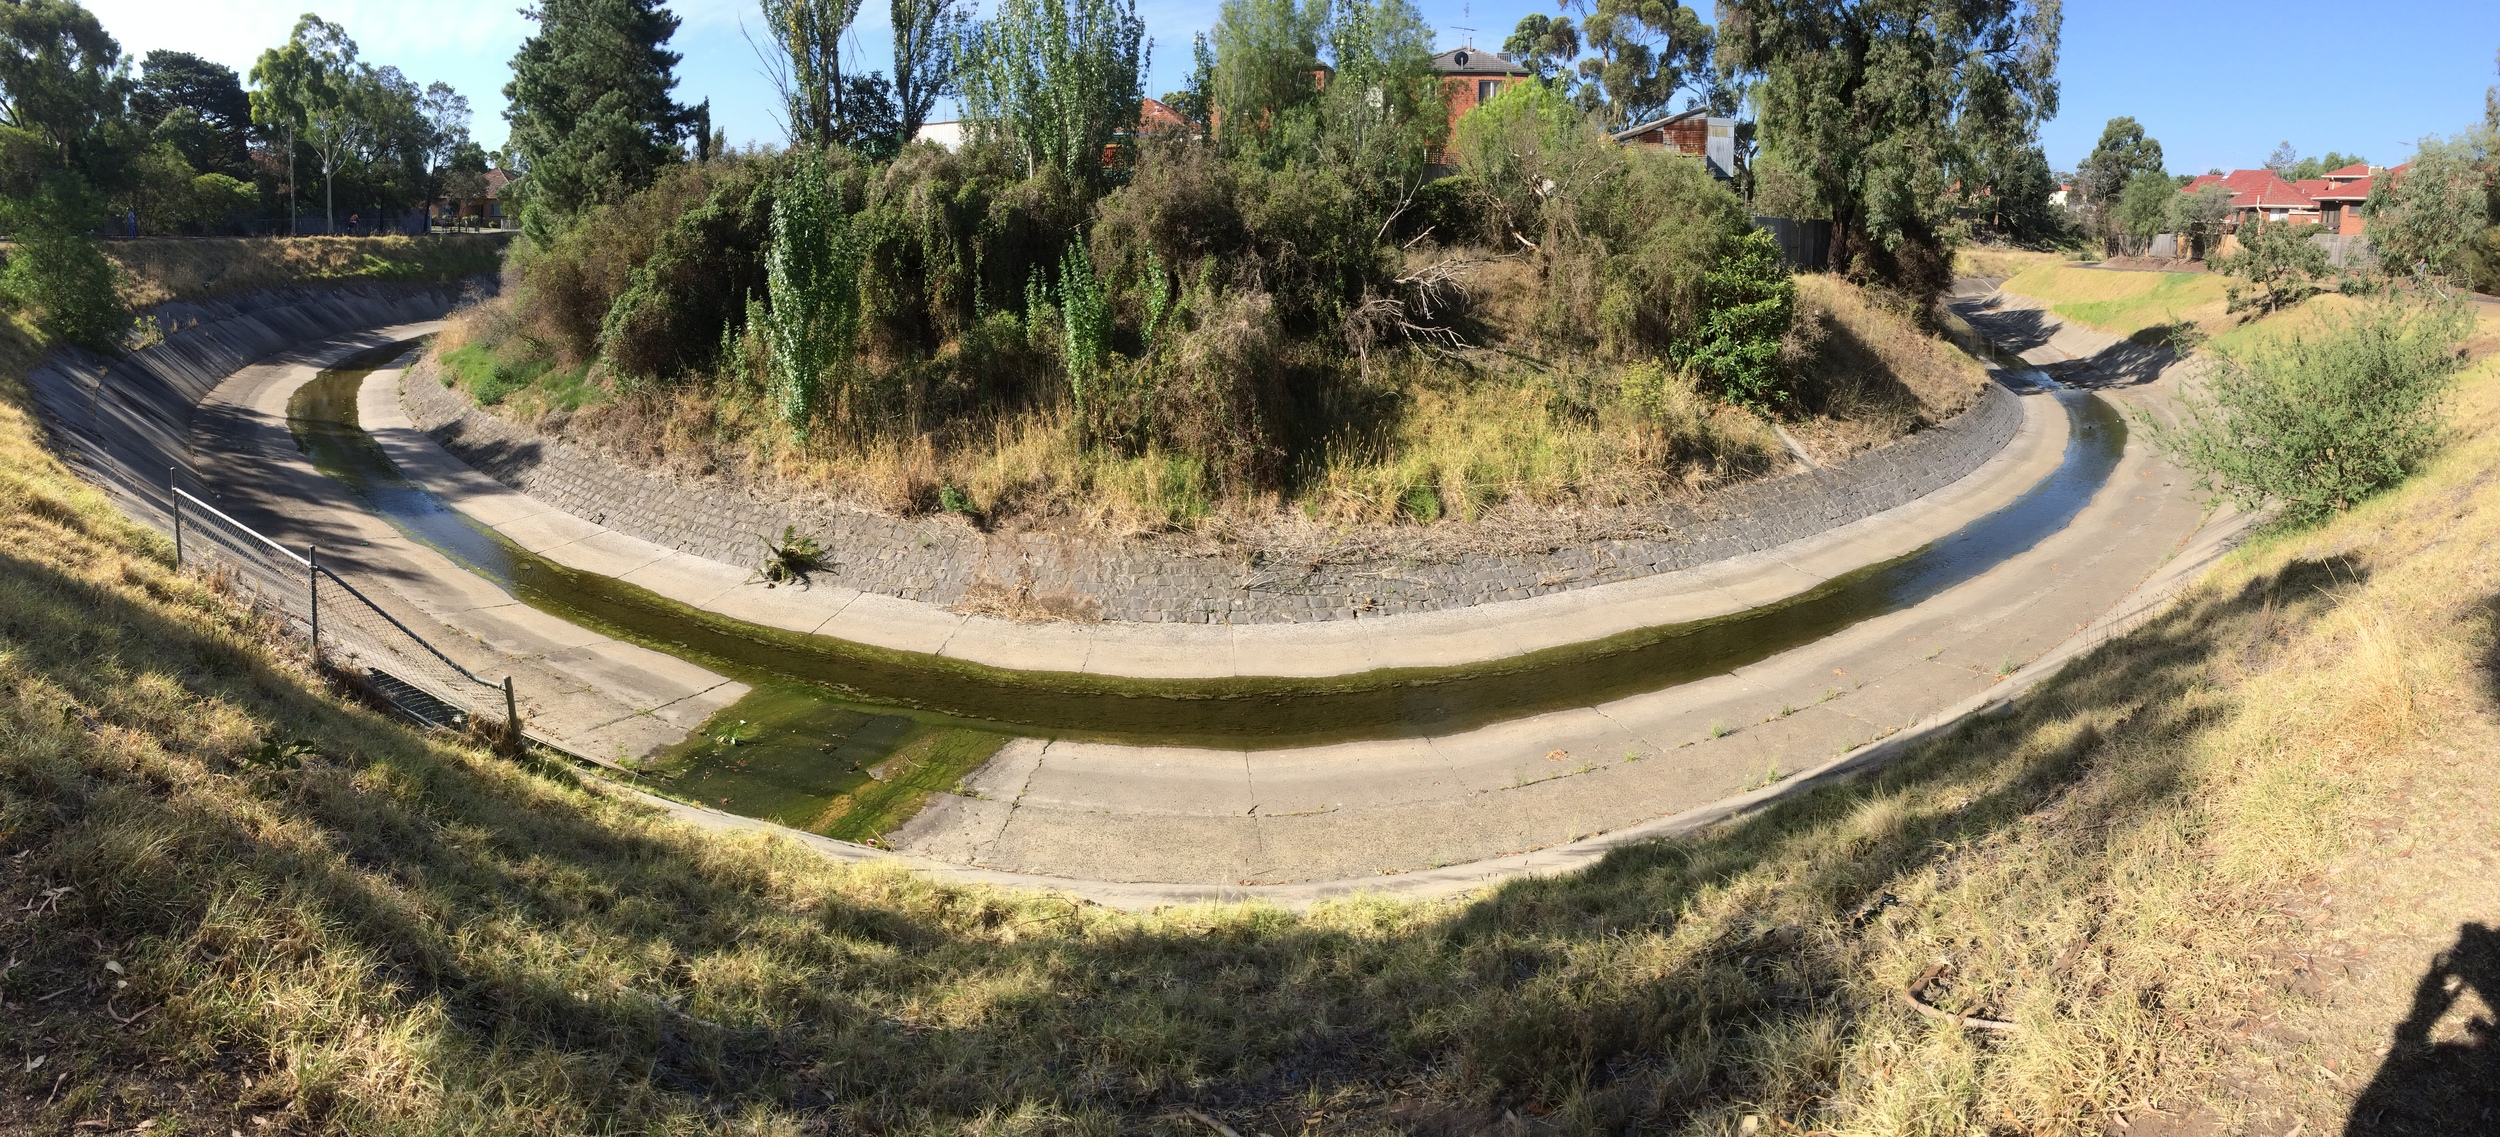 Moonee Ponds Creek - a concrete-lined shadow of its former self, but still flowingits original course and yielding some valuable riparian habitat along its banks for urban birders to explore.